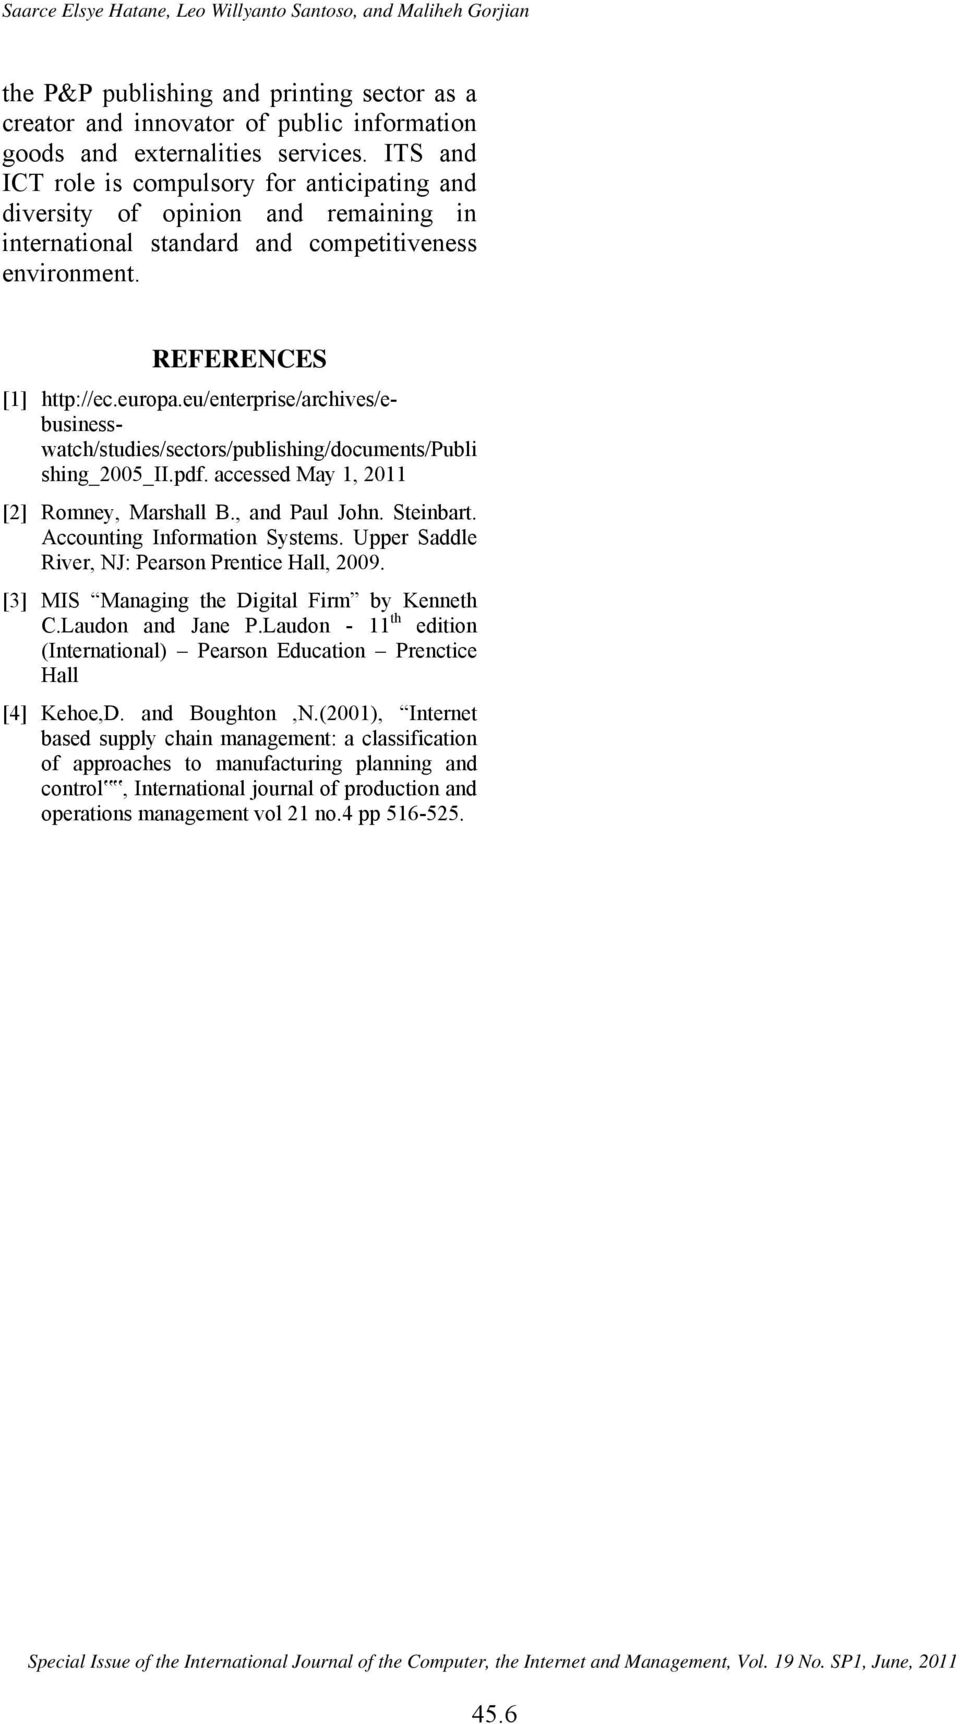 eu/enterprise/archives/ebusinesswatch/studies/sectors/publishing/documents/publi shing_2005_ii.pdf. accessed May 1, 2011 [2] Romney, Marshall B., and Paul John. Steinbart.